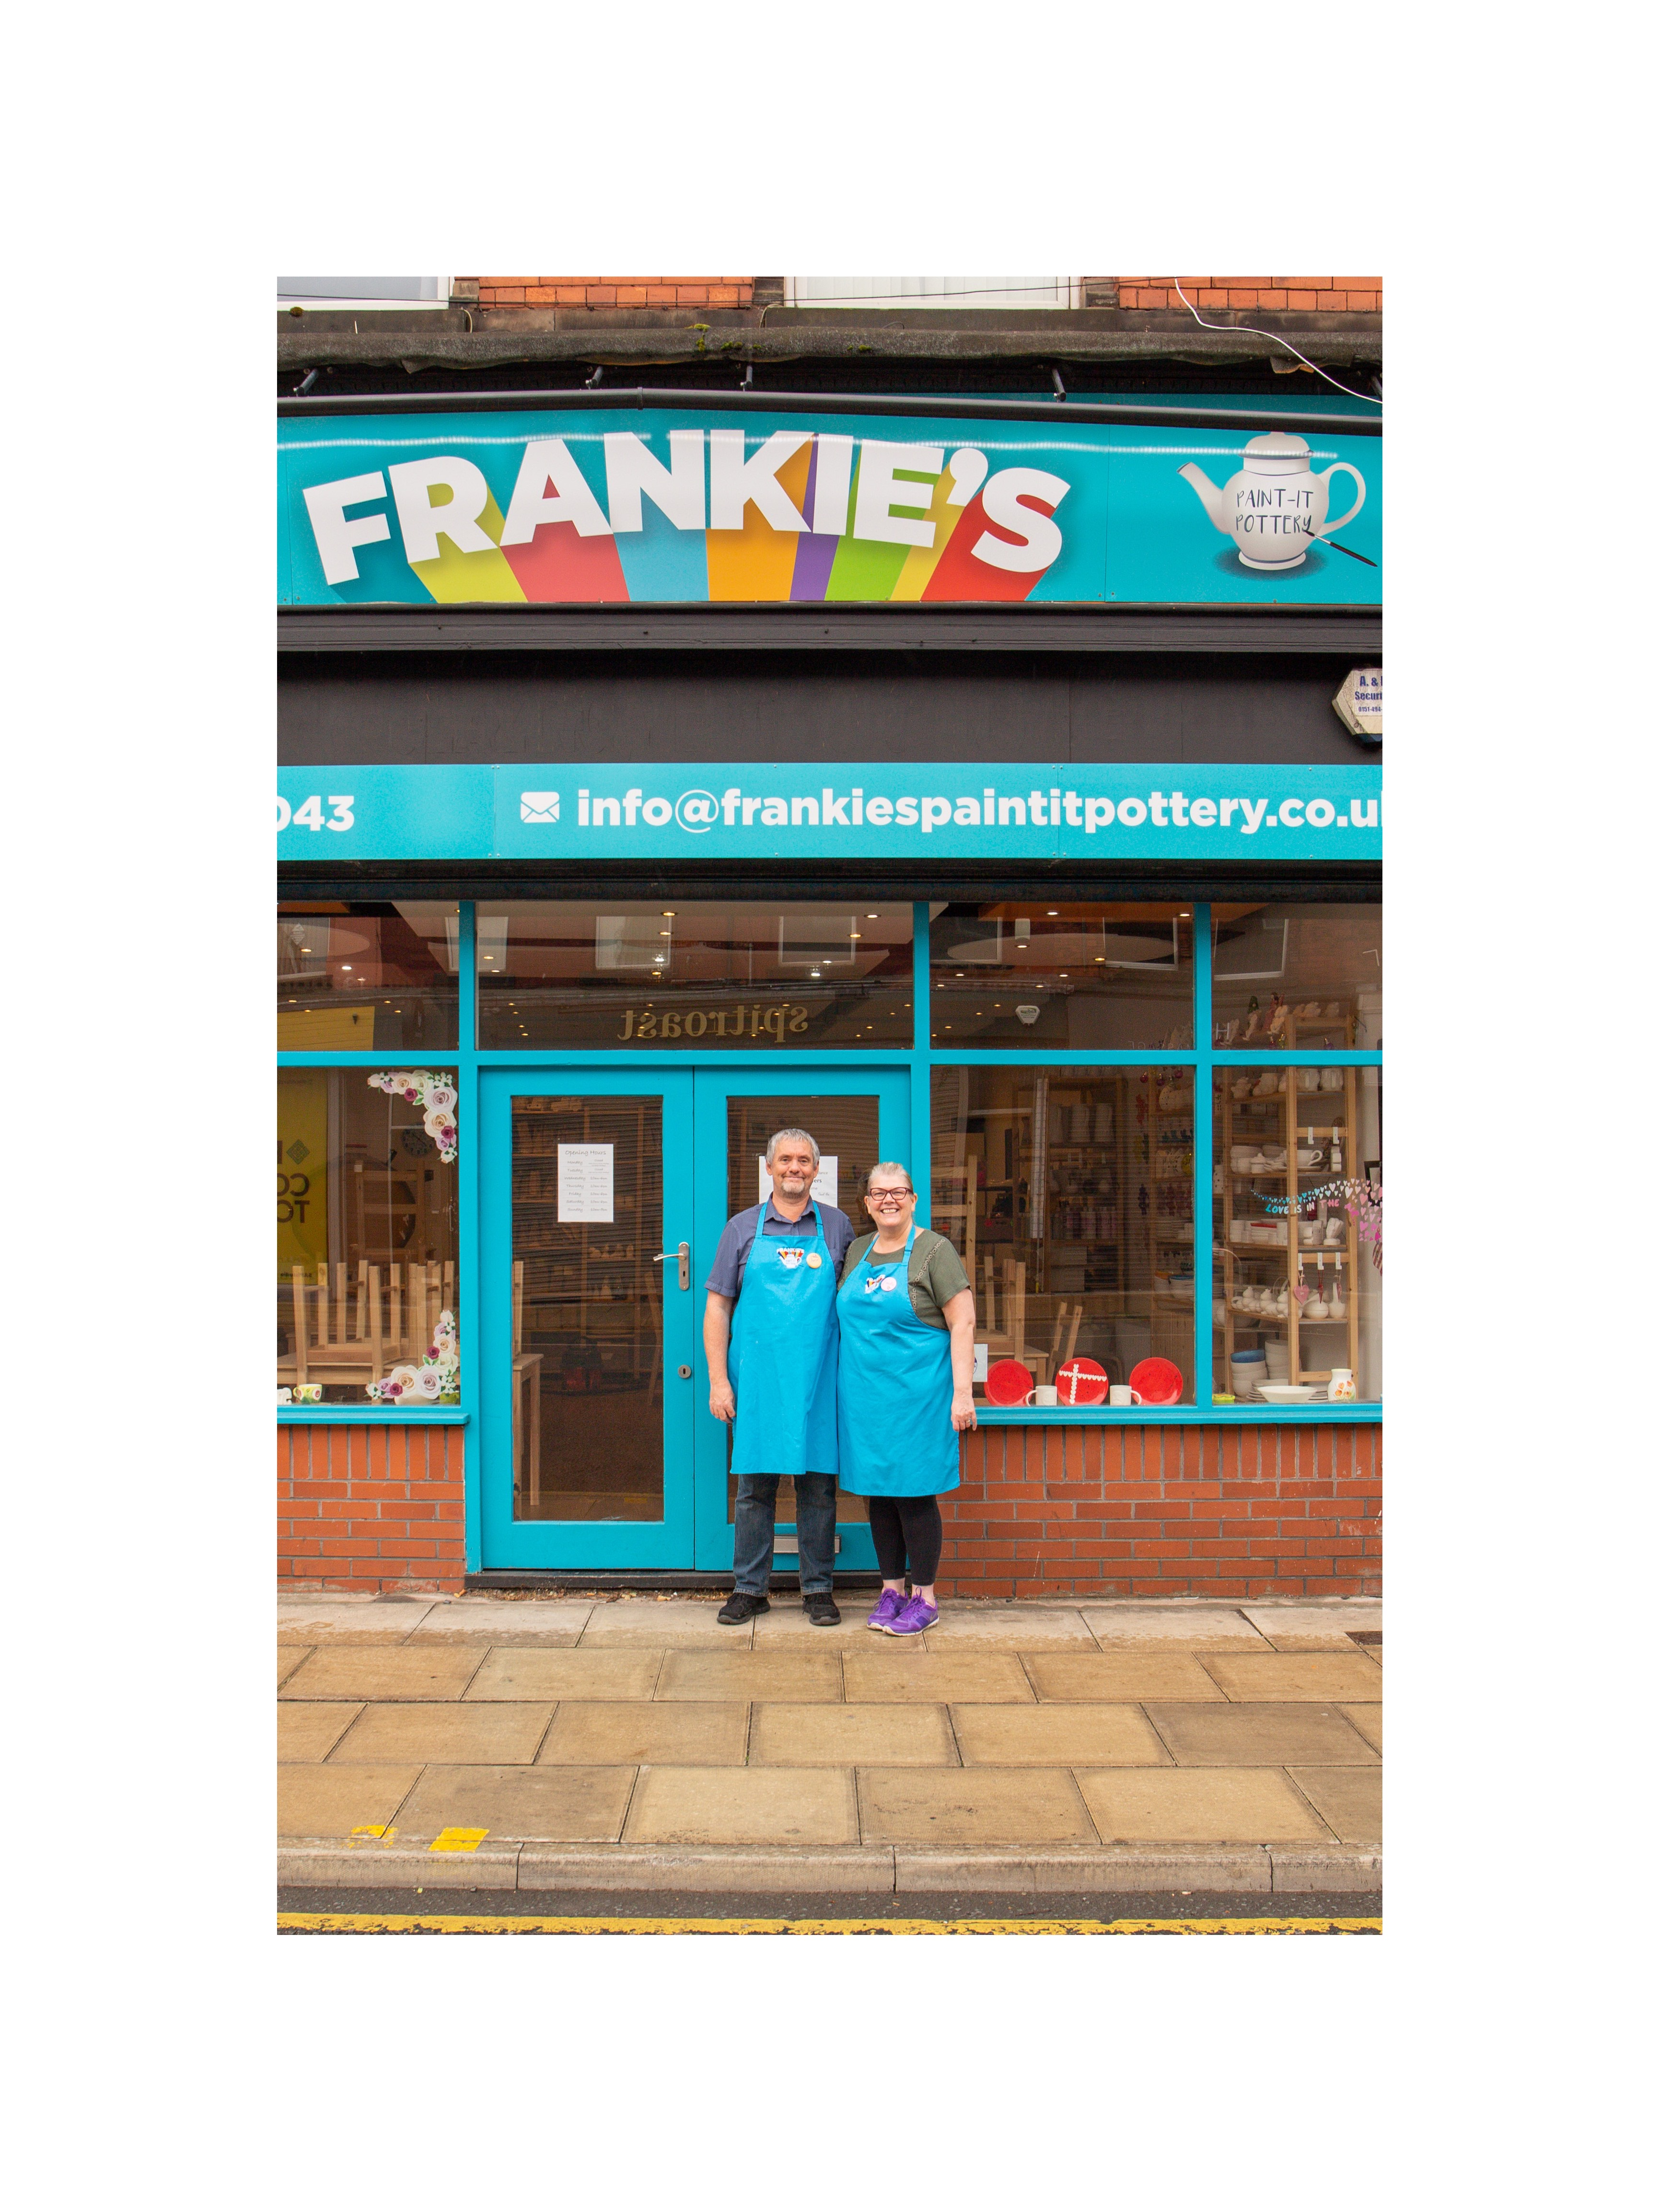 FRANKIE'S PAINT-IT POTTERY LIMITED